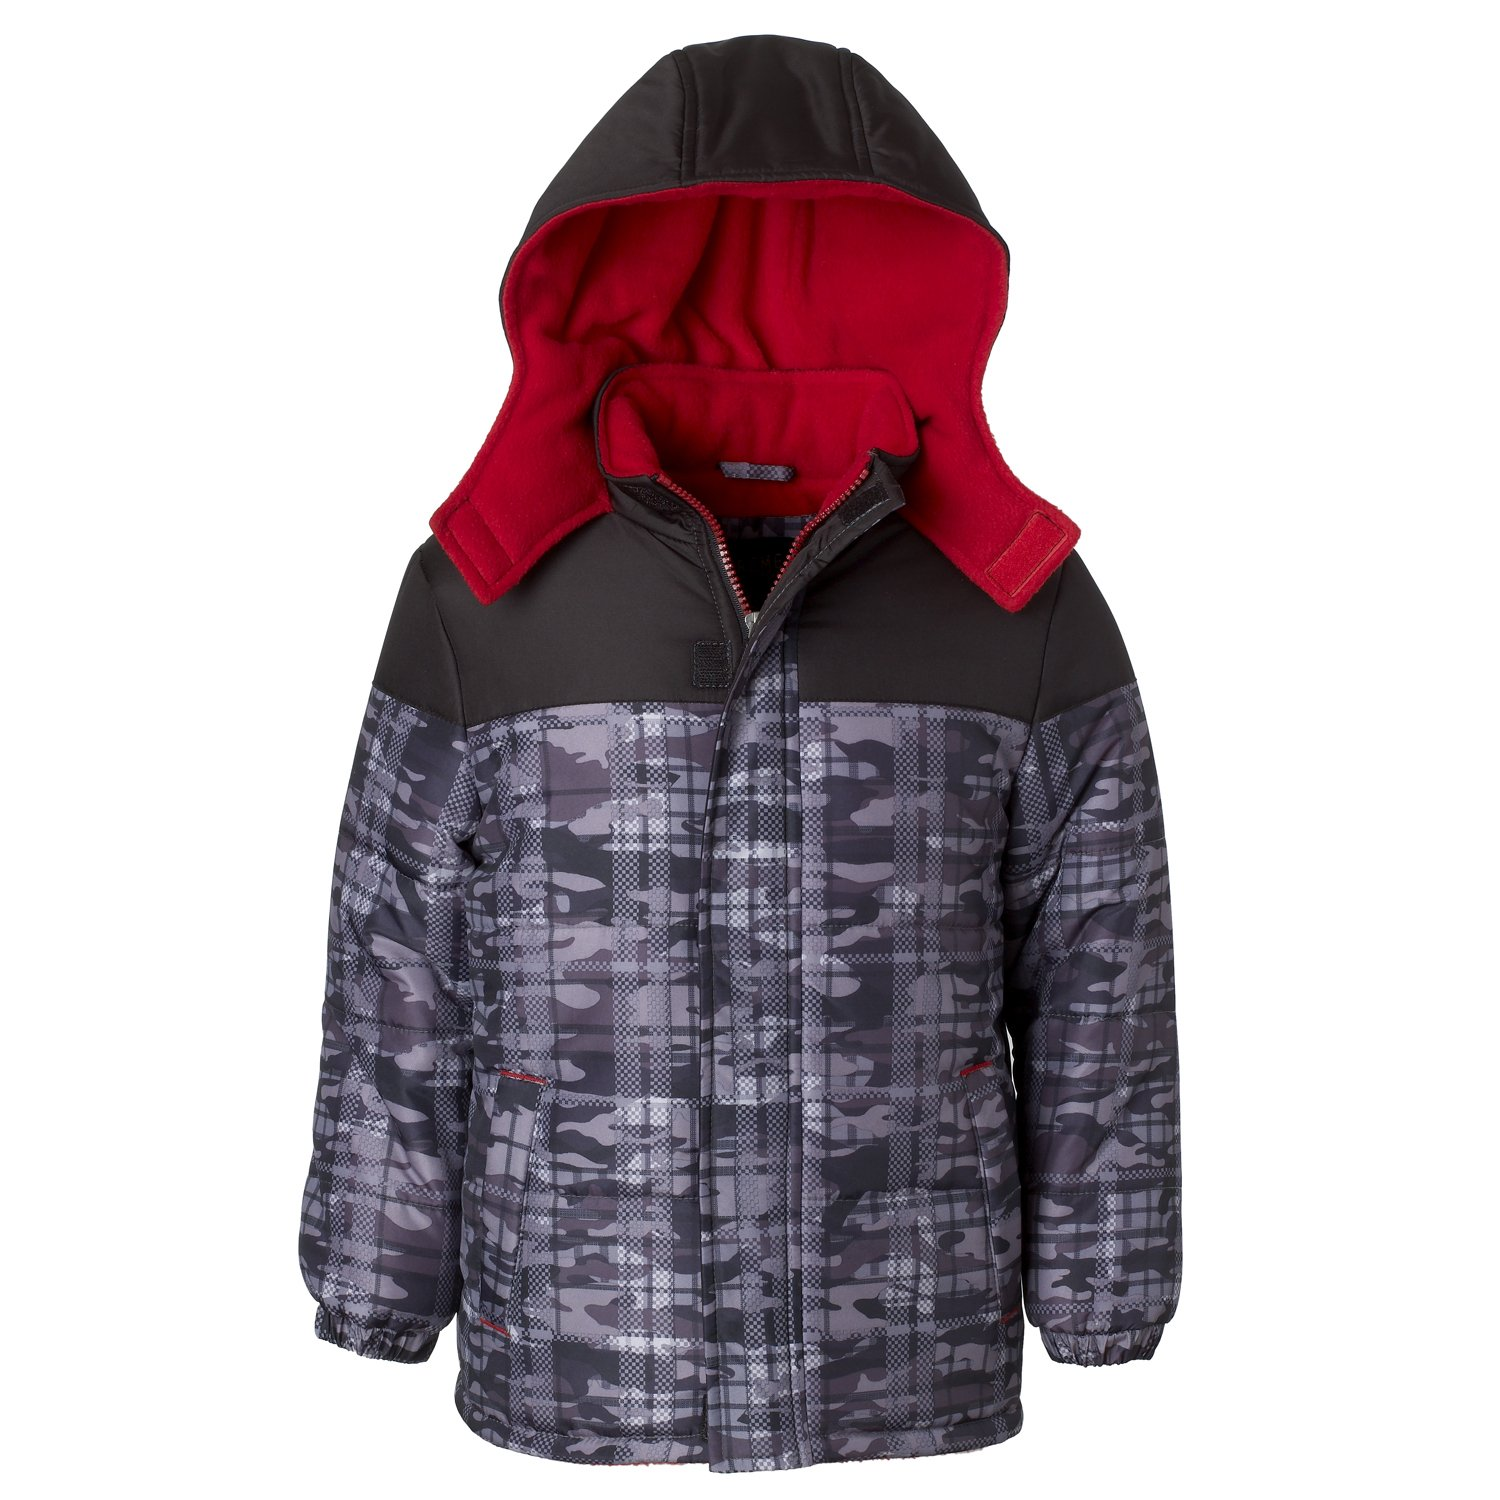 3ee47cbcb iXTREME Puffer Jacket for Boys   Toddlers with Camo Colorblock Print ...